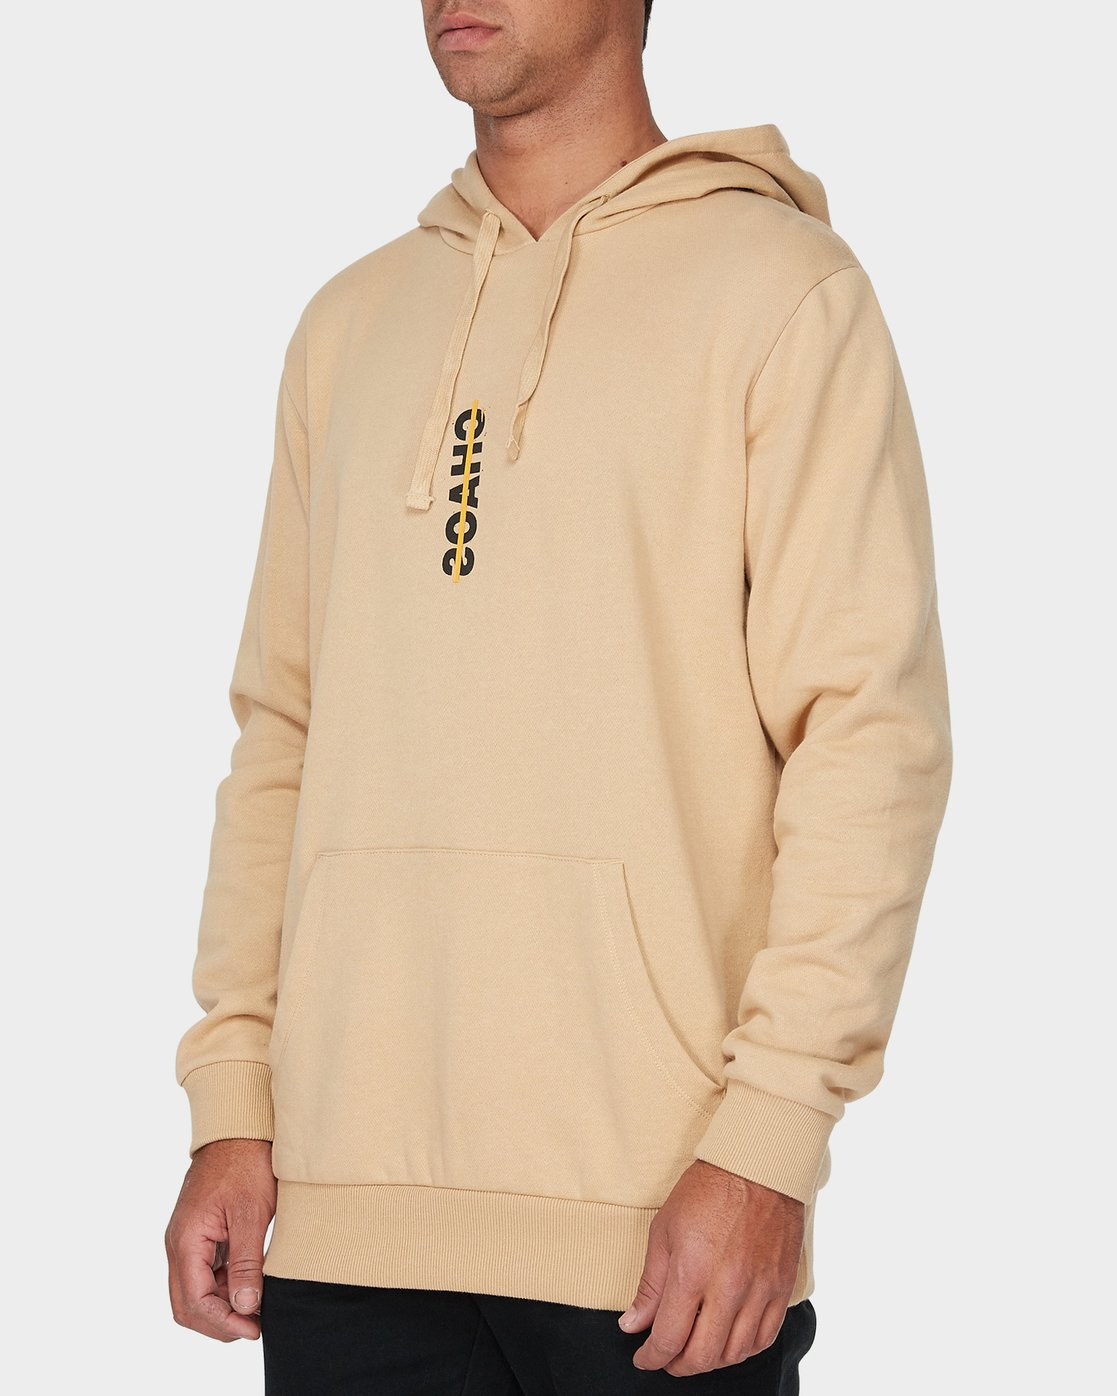 1 Chaos Pullover Hood Yellow R193165 RVCA